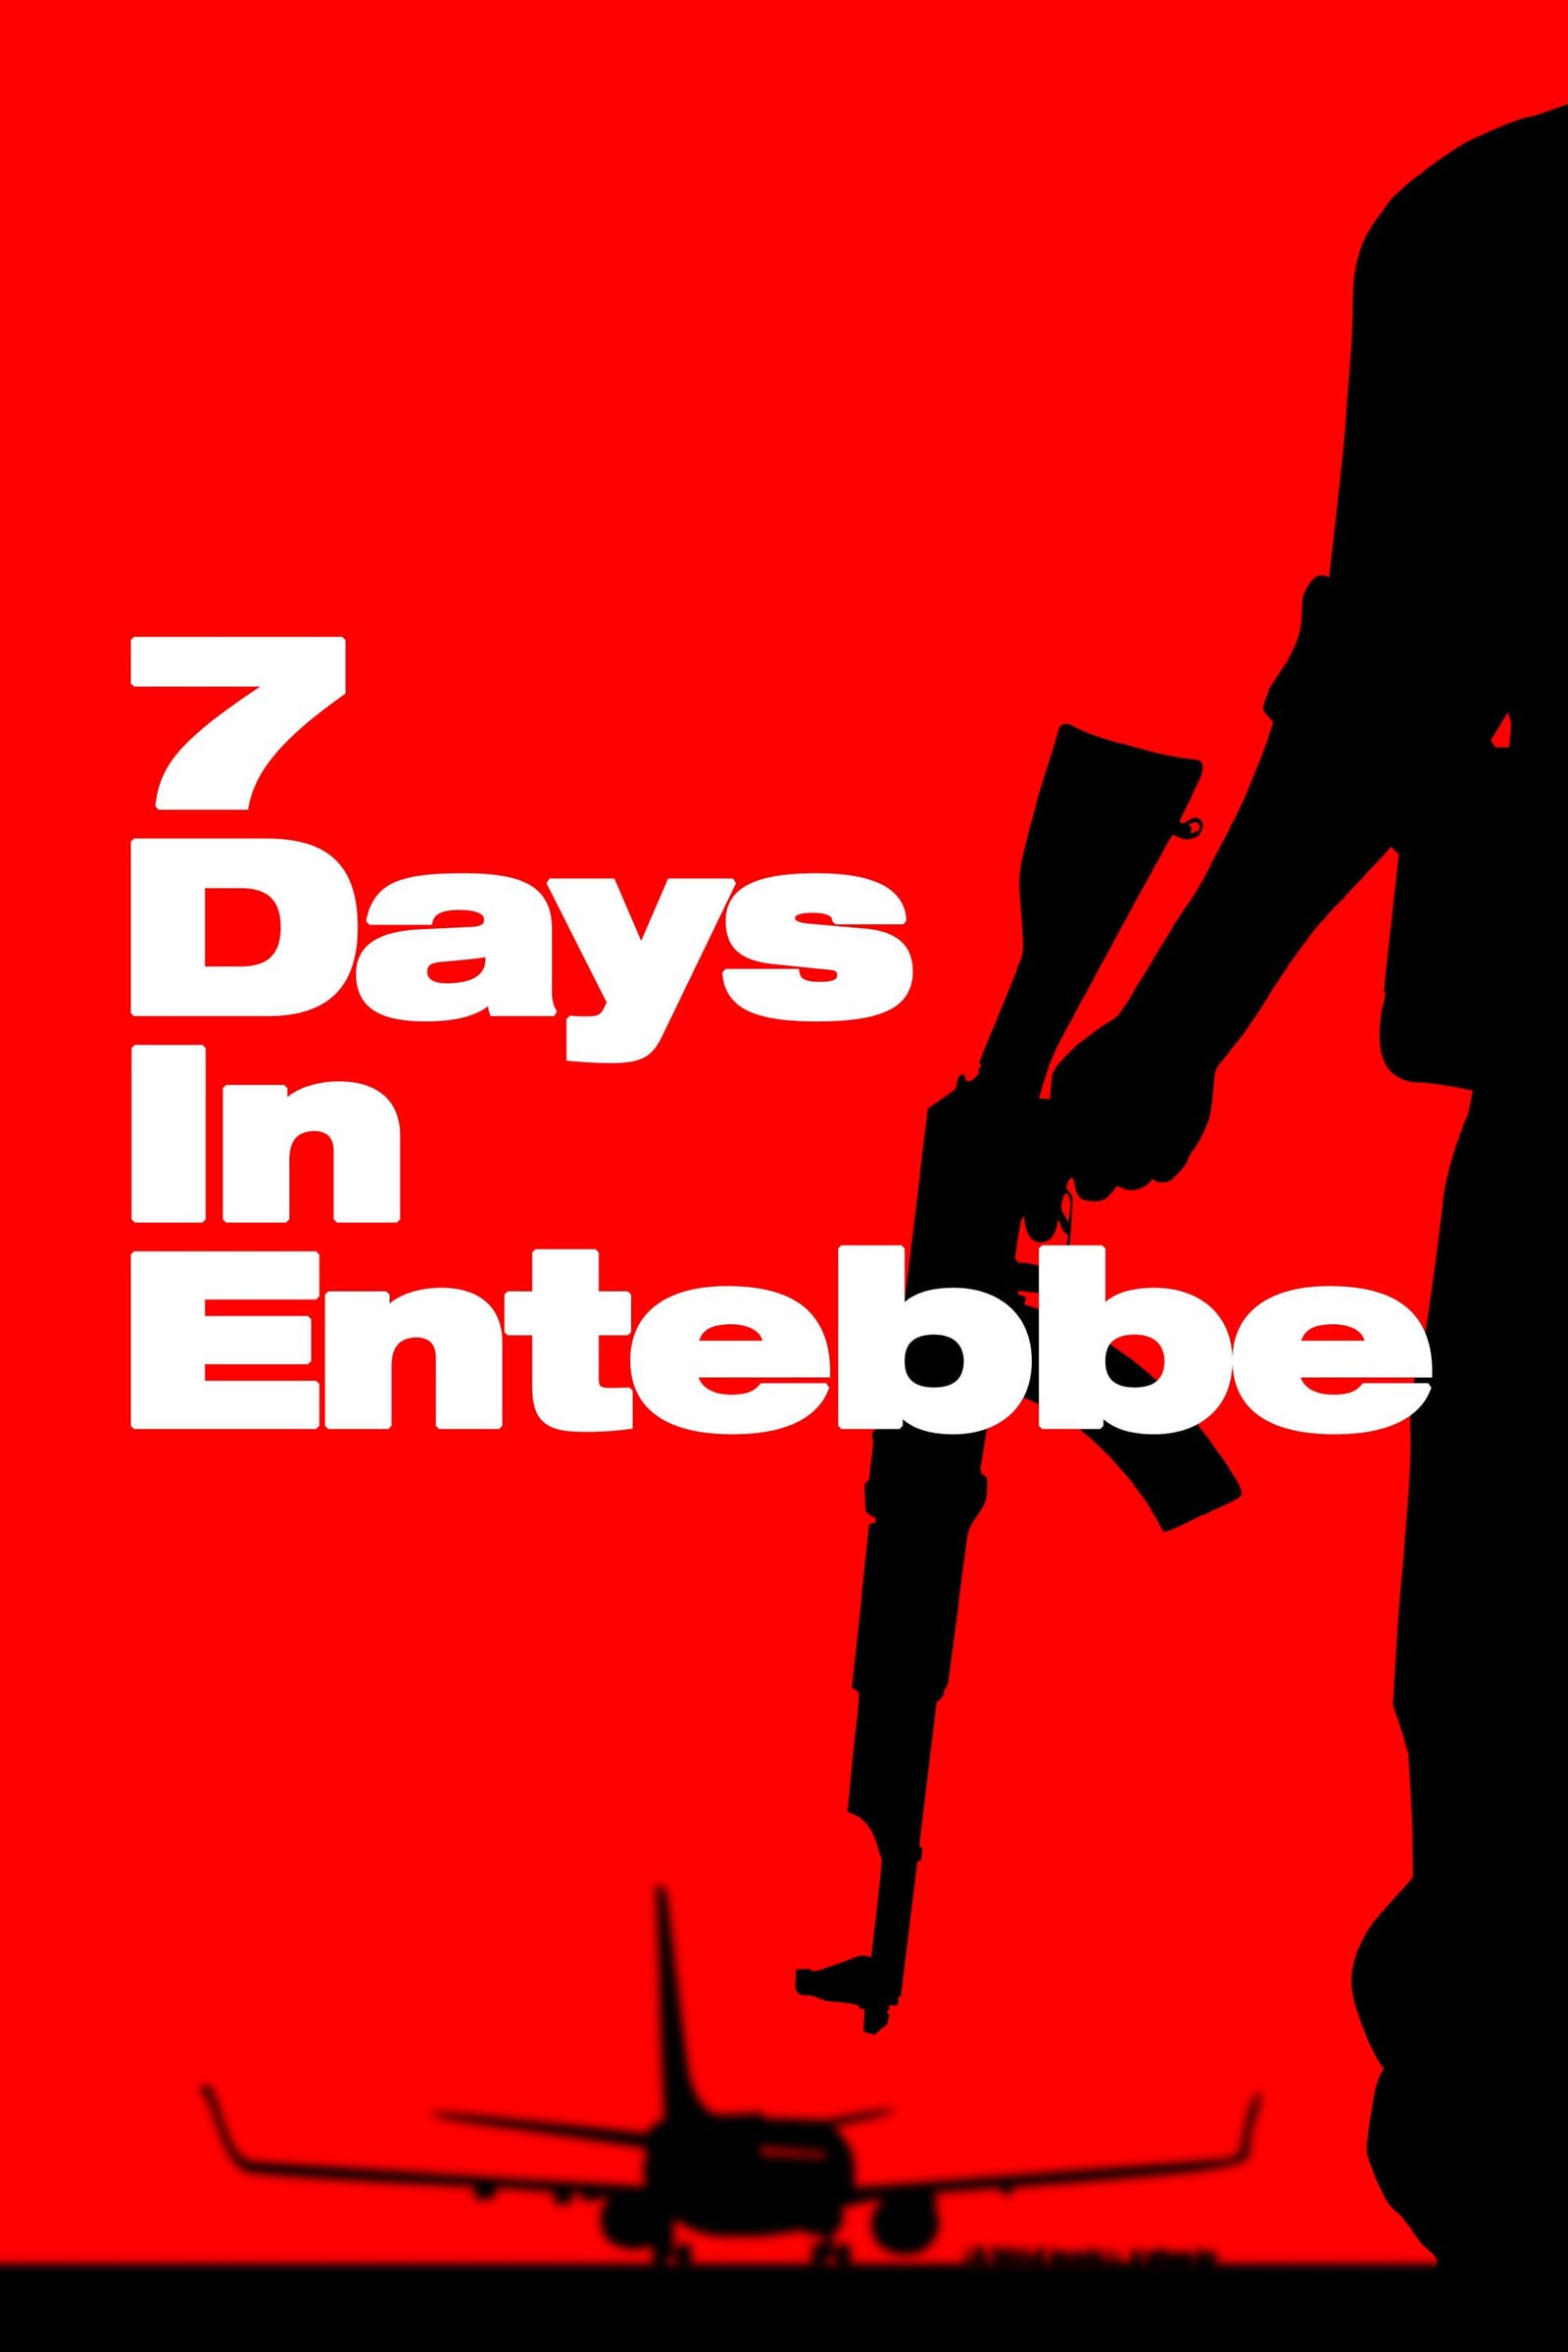 Subscene - 7 Days in Entebbe Arabic subtitle